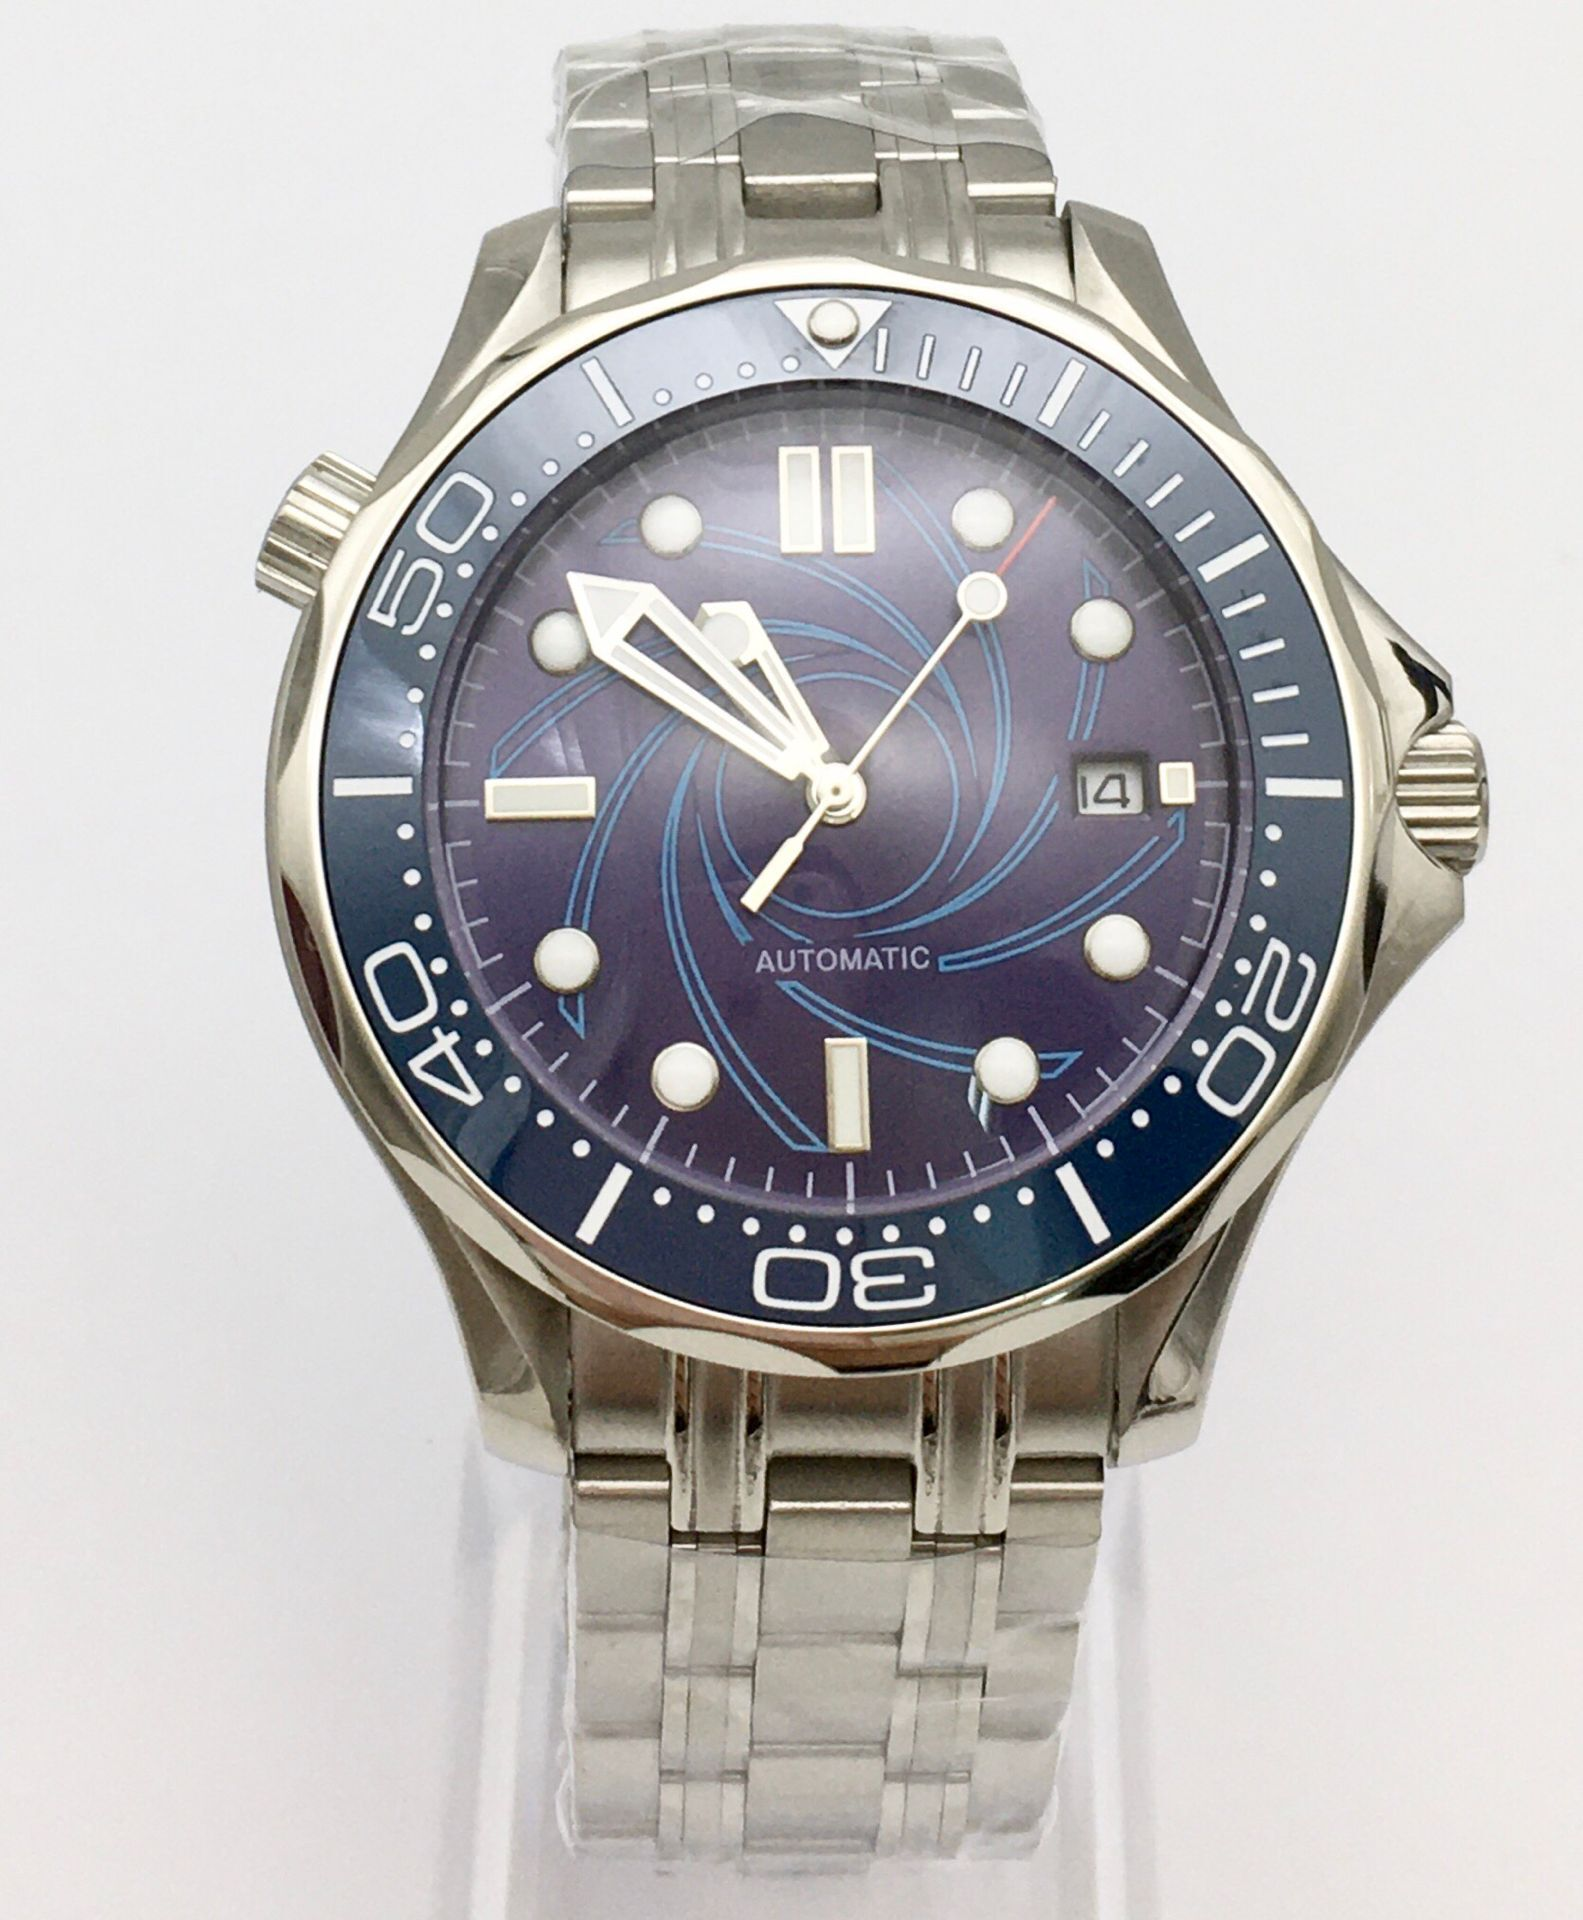 41 cm blue dial watch men's watch automatic mechanical clock date ceramic bezel stainless steel solid case 007